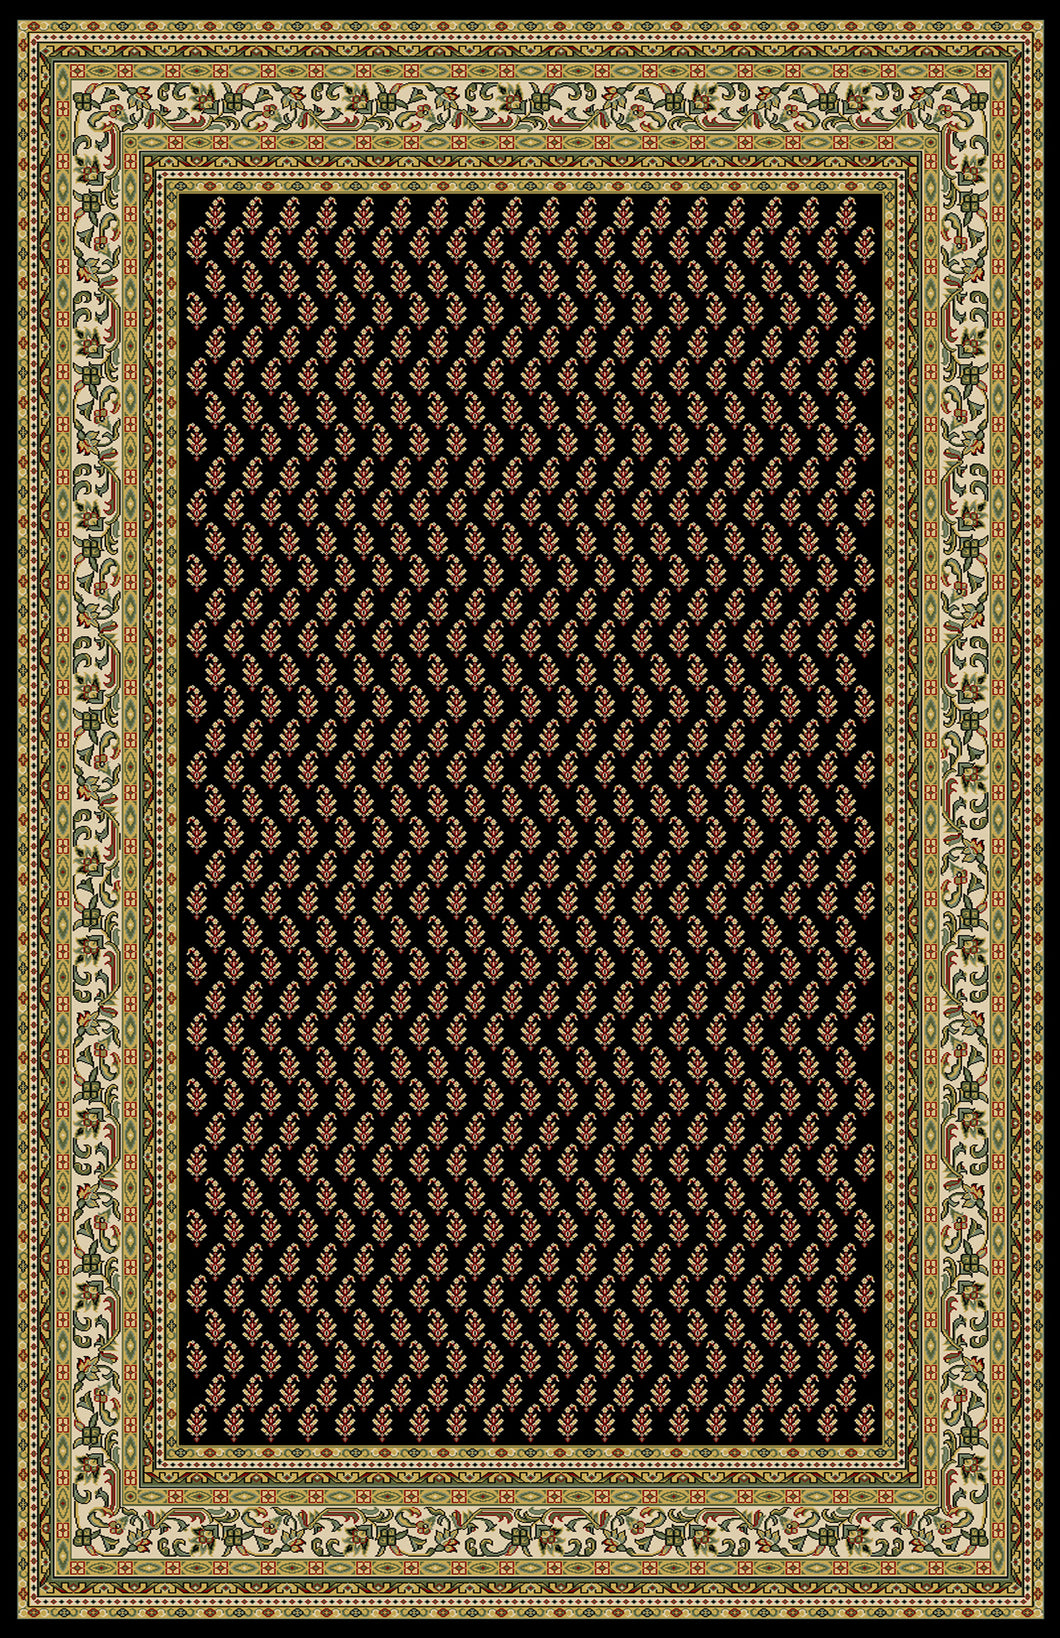 Altman Black Area Rug - Rug Tycoon